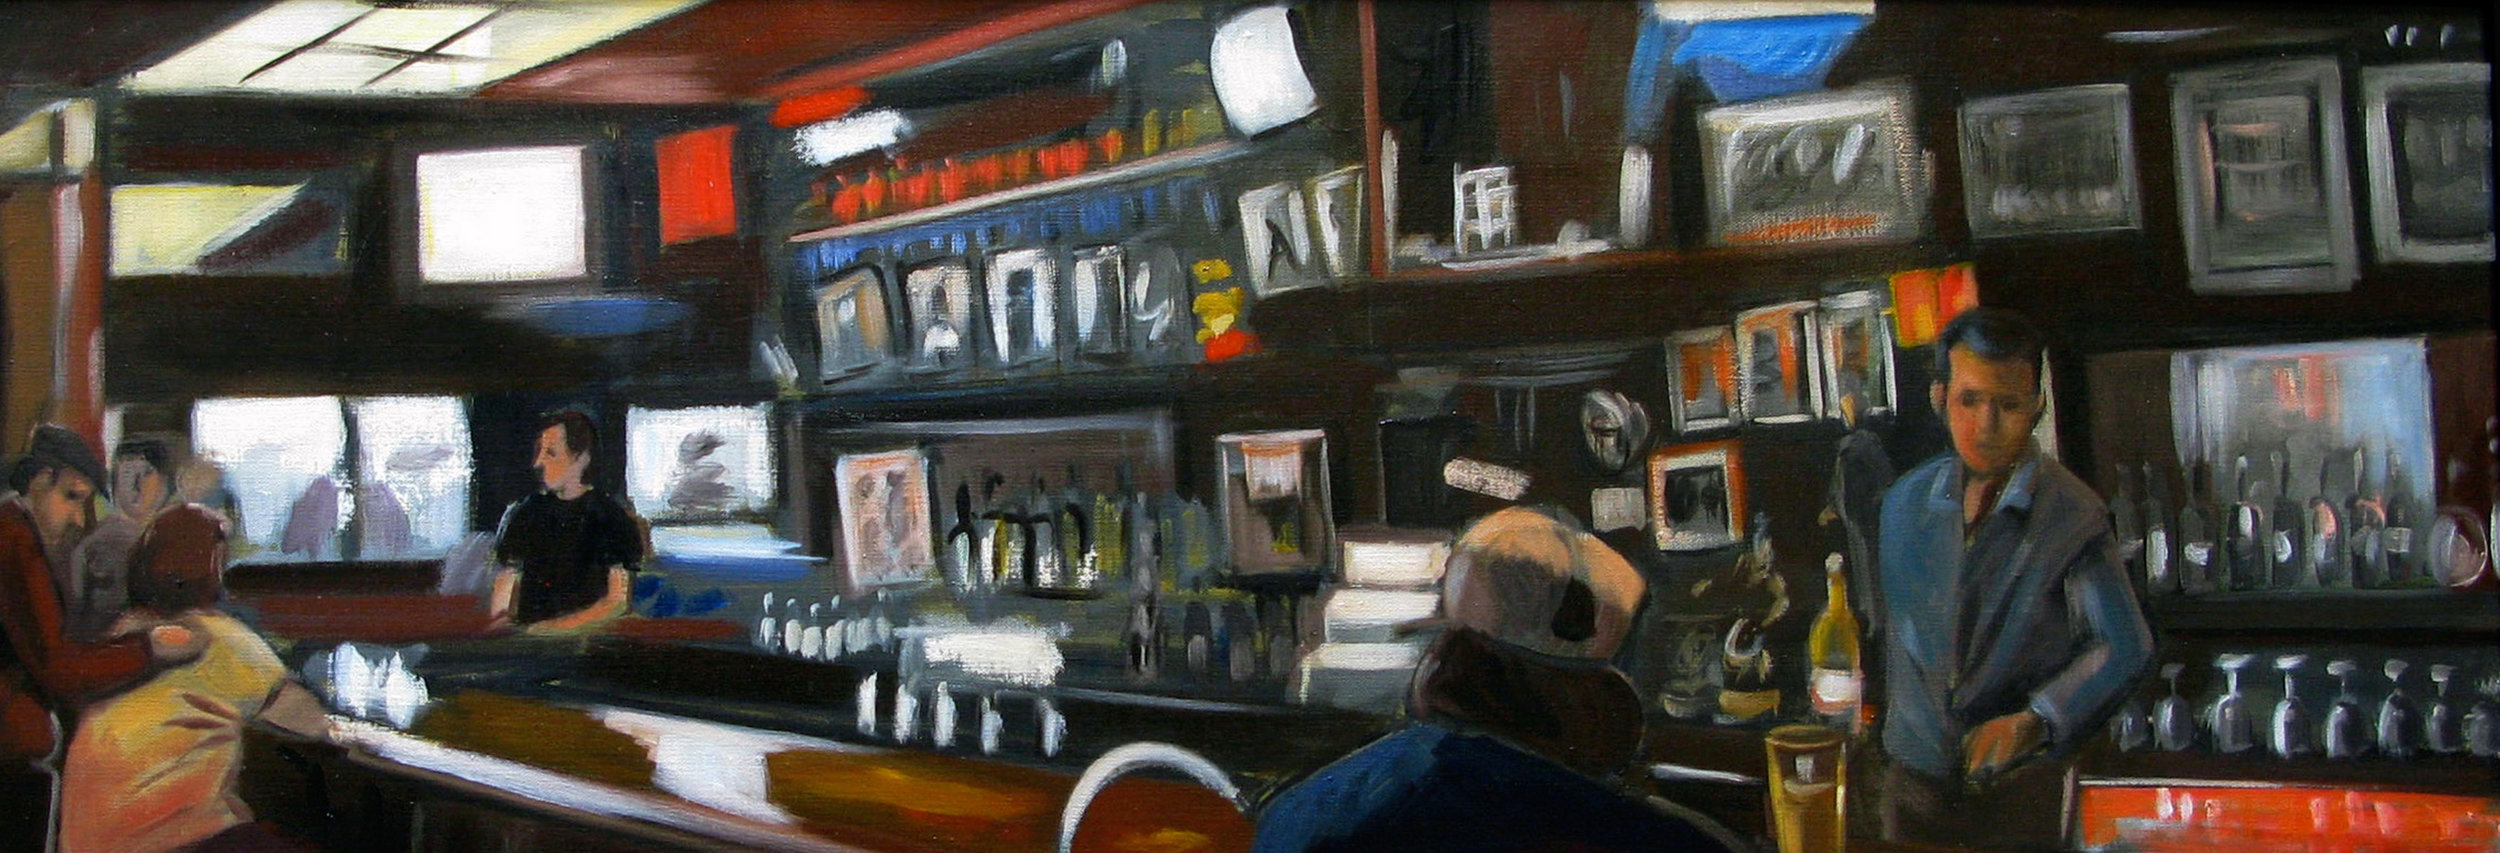 Raul Guerrero  The Alibi: San Diego, 2009  Oil on linen Framed Dimensions: 16 x 46 inches (40.6 x 116.8 centimeters)